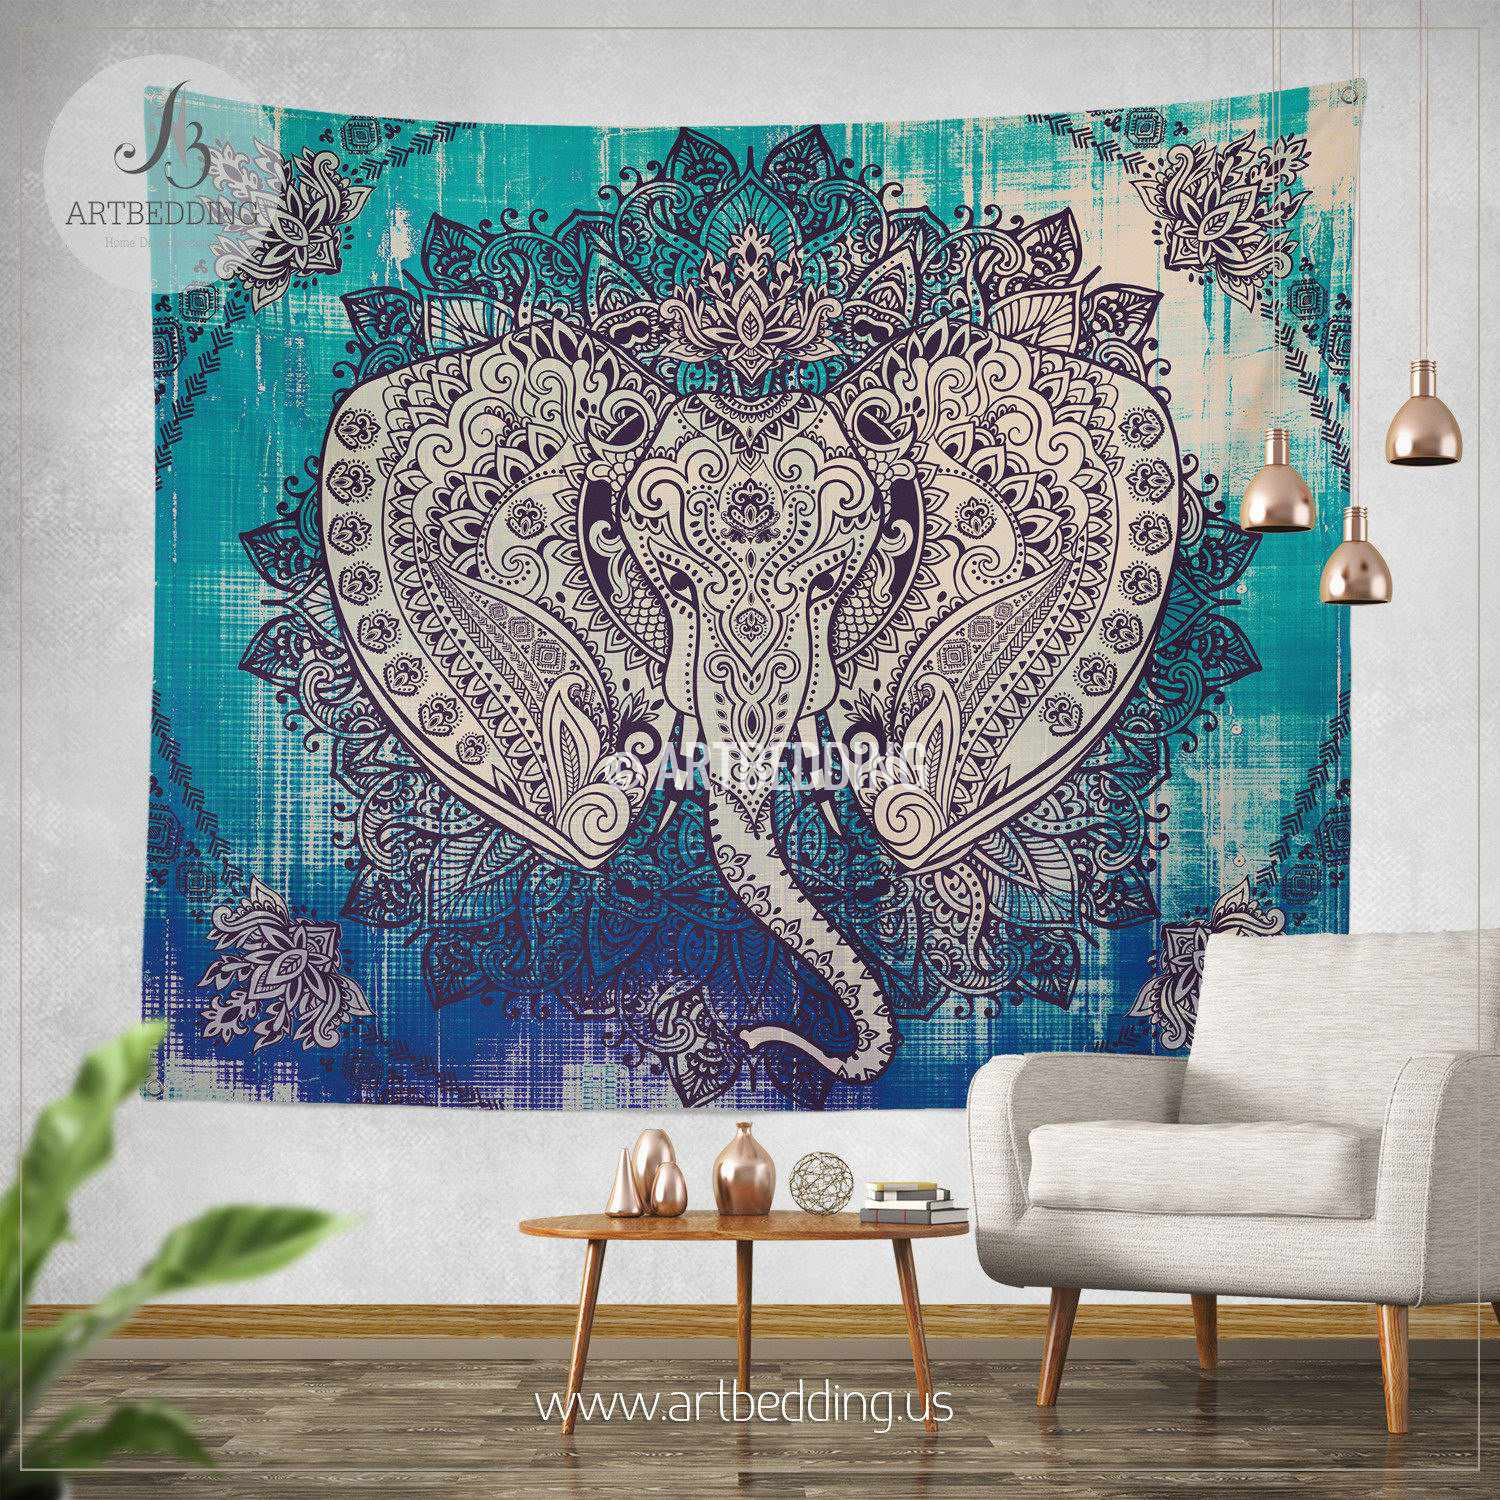 Boho Elephant Tapestry Ganesh Elephant Wall Hanging Indie Shabby Chic Distressed Tapestry Wall Decor Bohemian Wall Tapestries Artbedding Wall Art